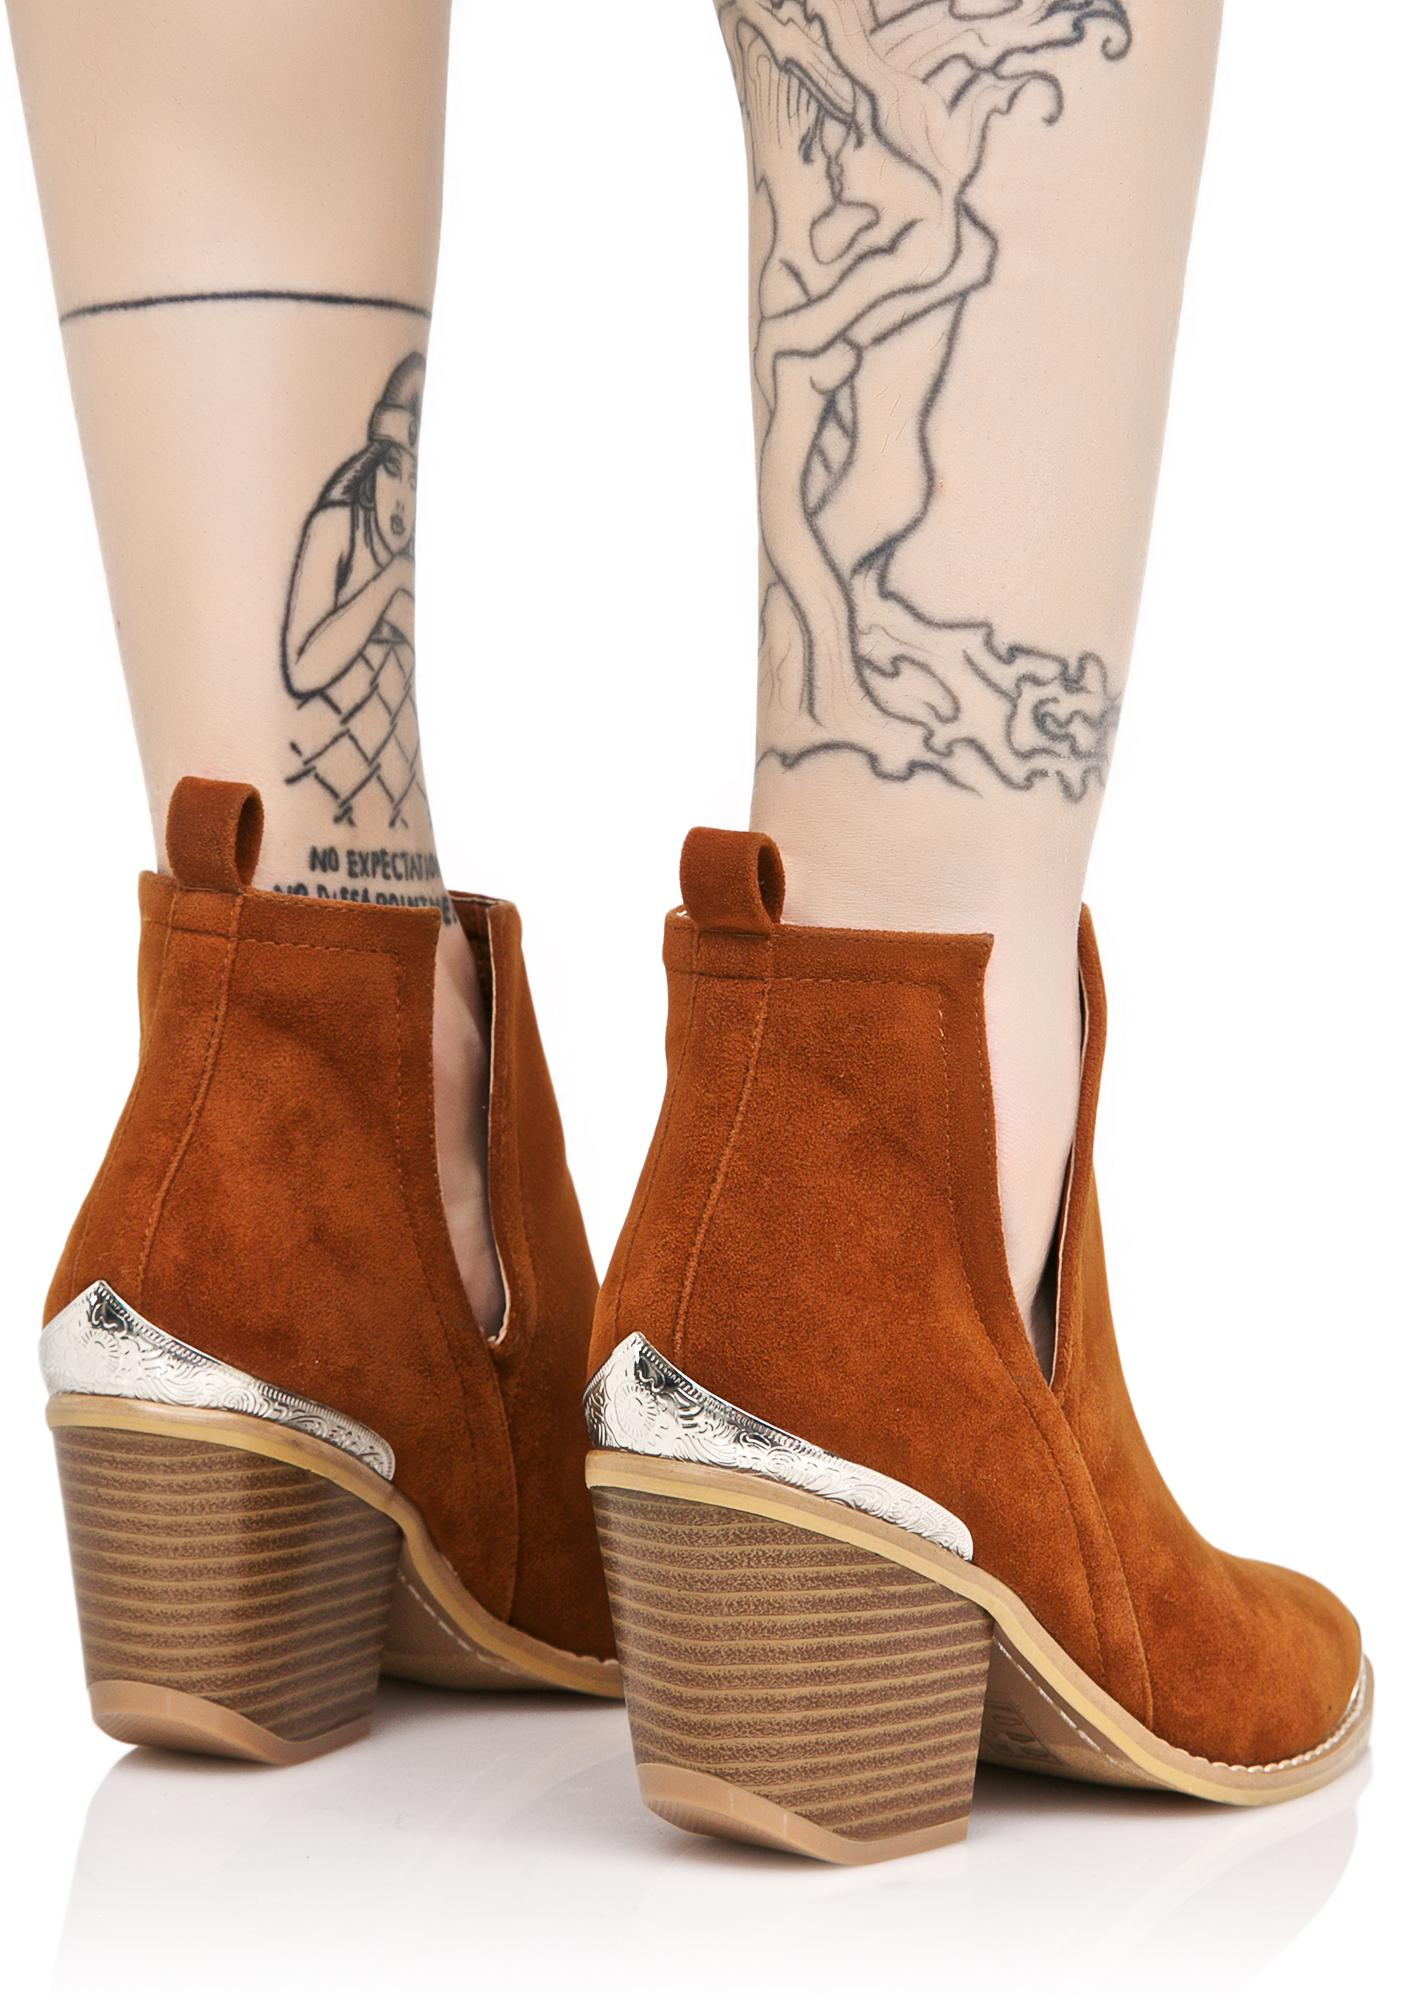 Sidewinder Cut Out Boots